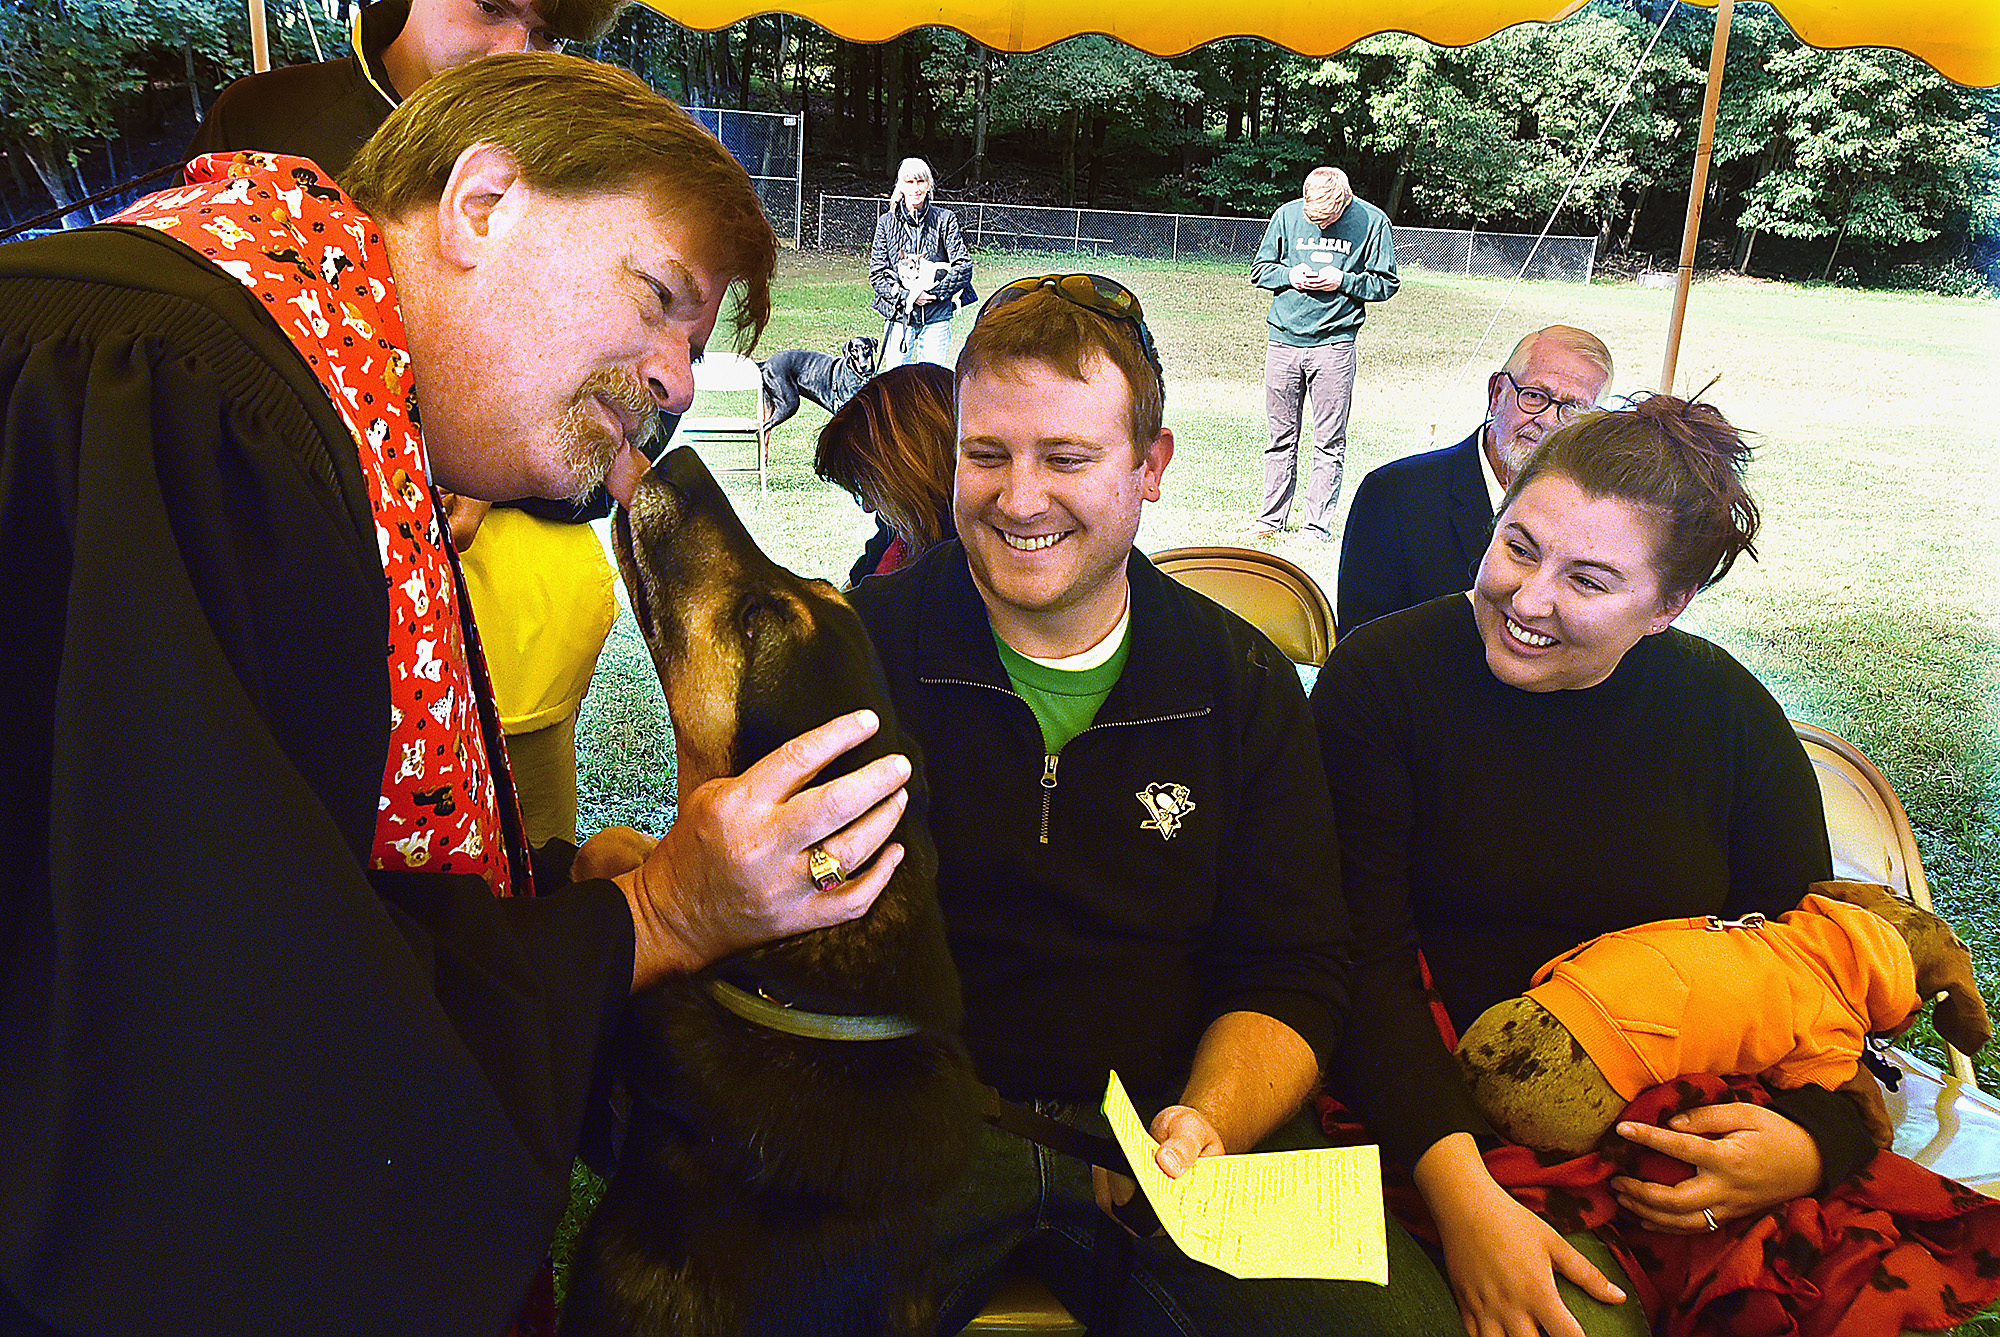 20150913radAnimalBlessWest05-4 The Rev. Ed Cadwallader gets a lick from Mowgli, a German shepherd mix, as he administers a blessing at an outdoor Sunday worship at the Bradford Woods Community Church in 2015. Owners Matt and Carla Porterfield look on.